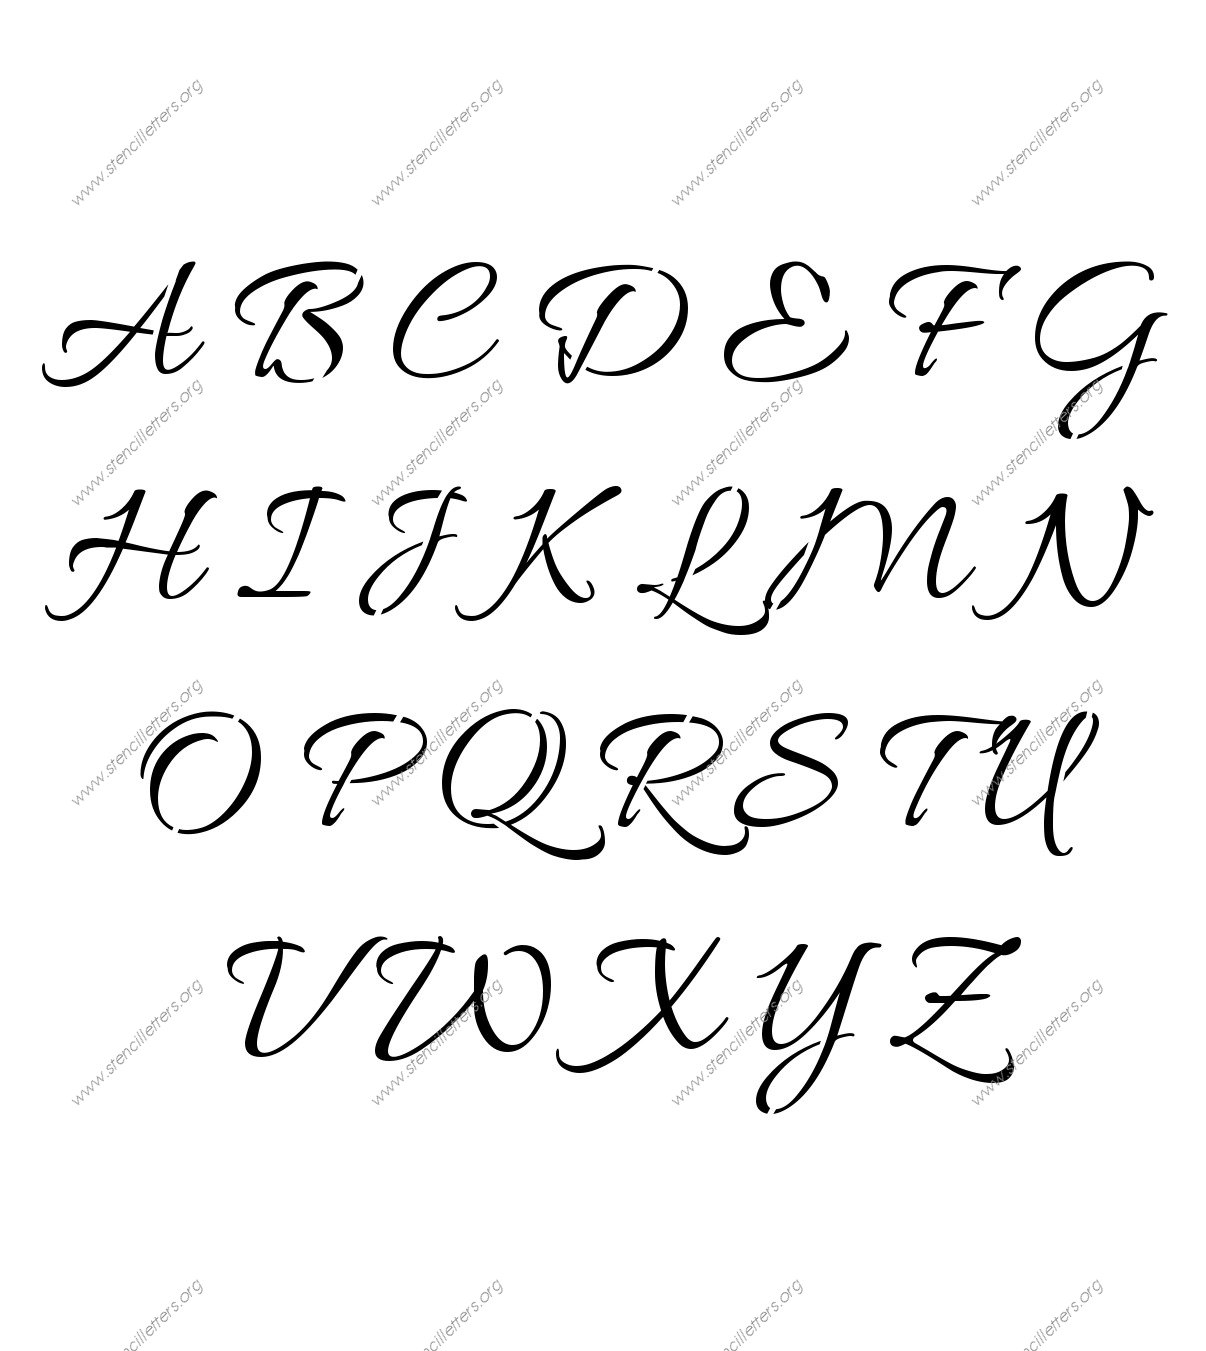 Worksheet Letter In Cursive stylish cursive letter stencils numbers and custom made to order connected stencil set